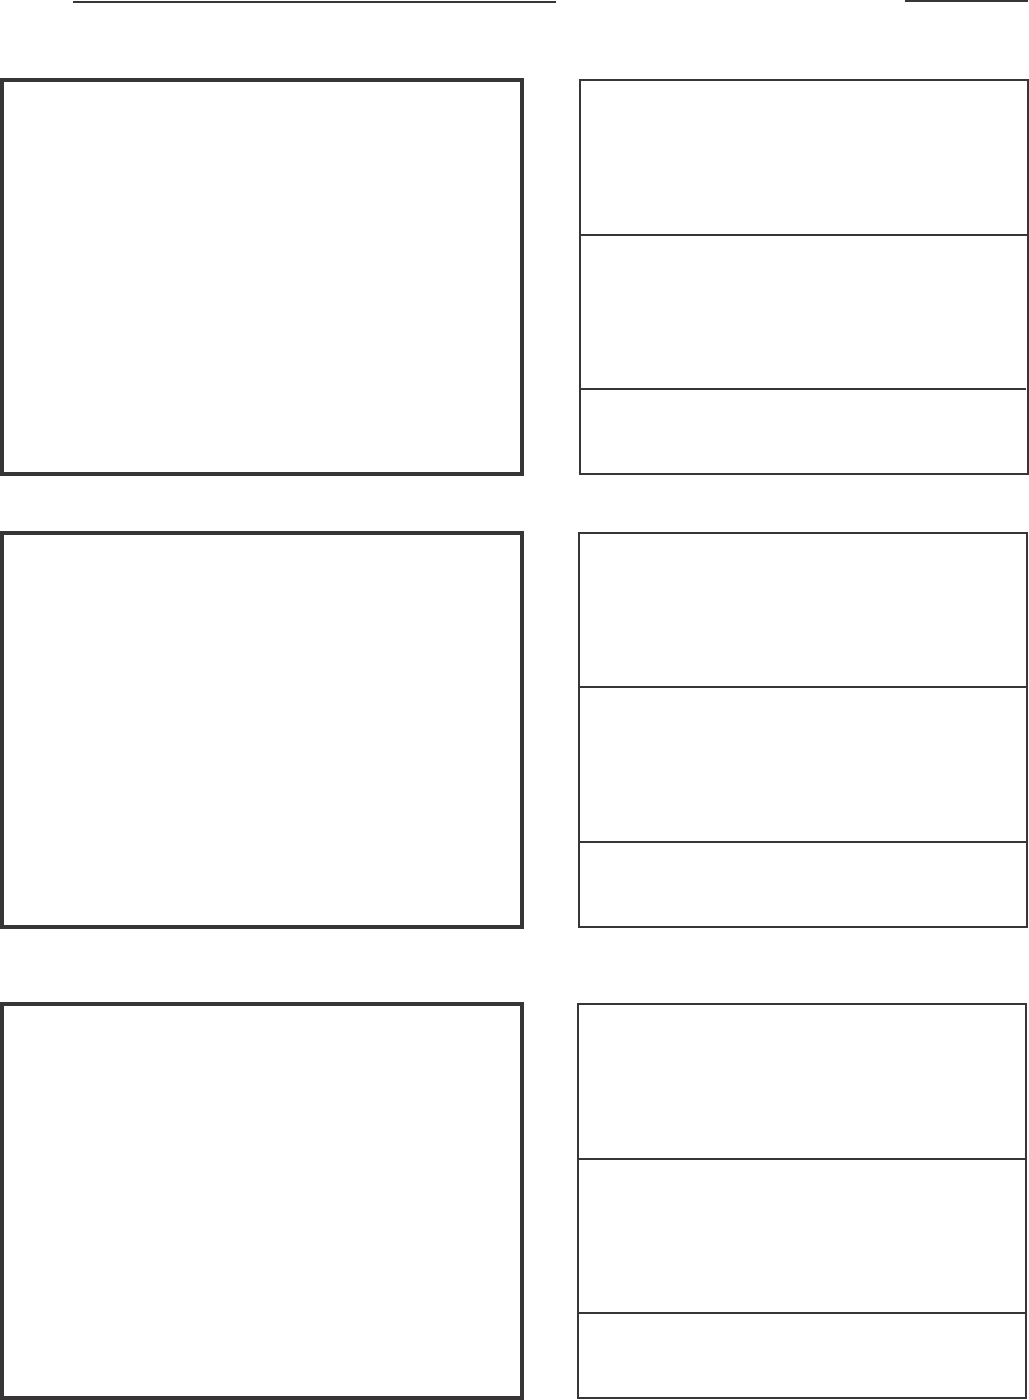 Free vertical storyboard template pdf 1046kb 1 pages vertical storyboard template maxwellsz